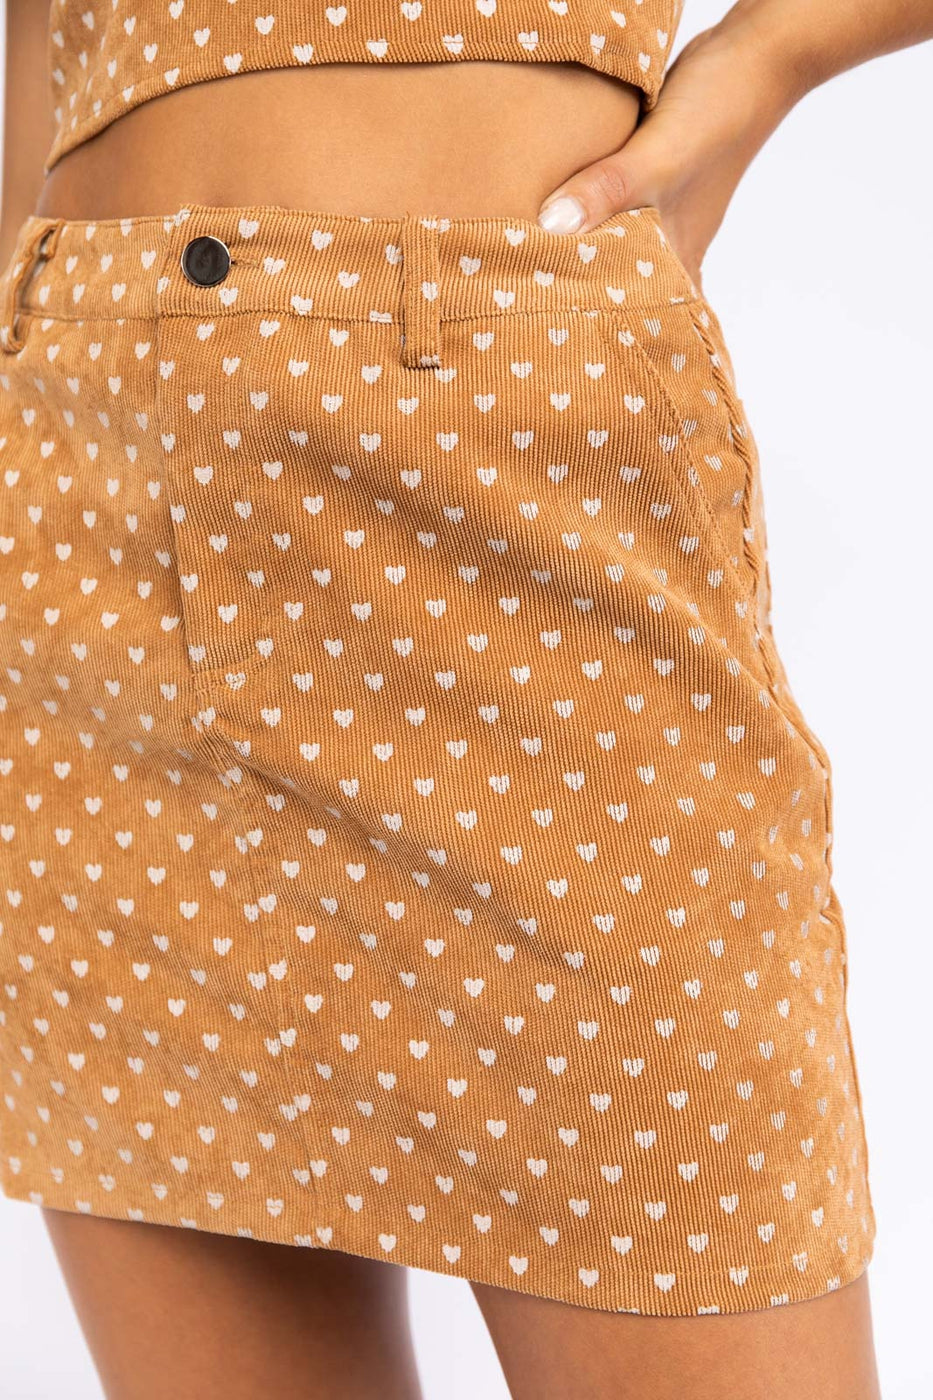 Polka Dot Mini Skirt With Back Pockets In Tan Siin Bees